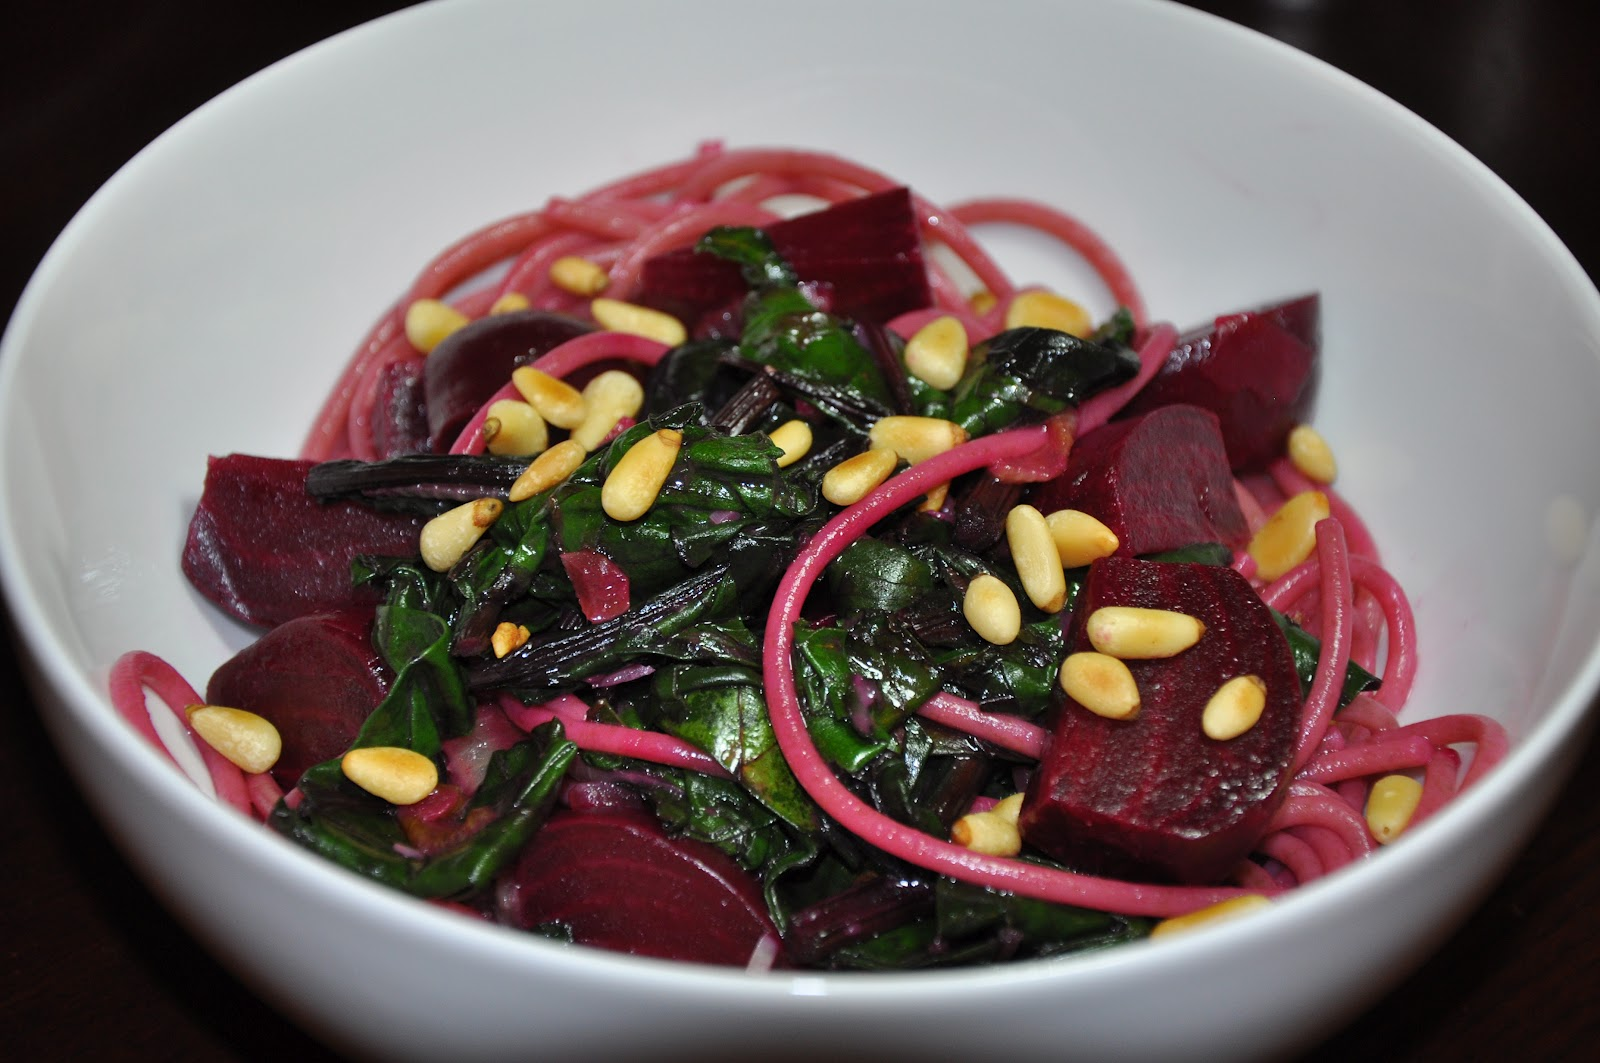 Spaghetti with Beets and Greens